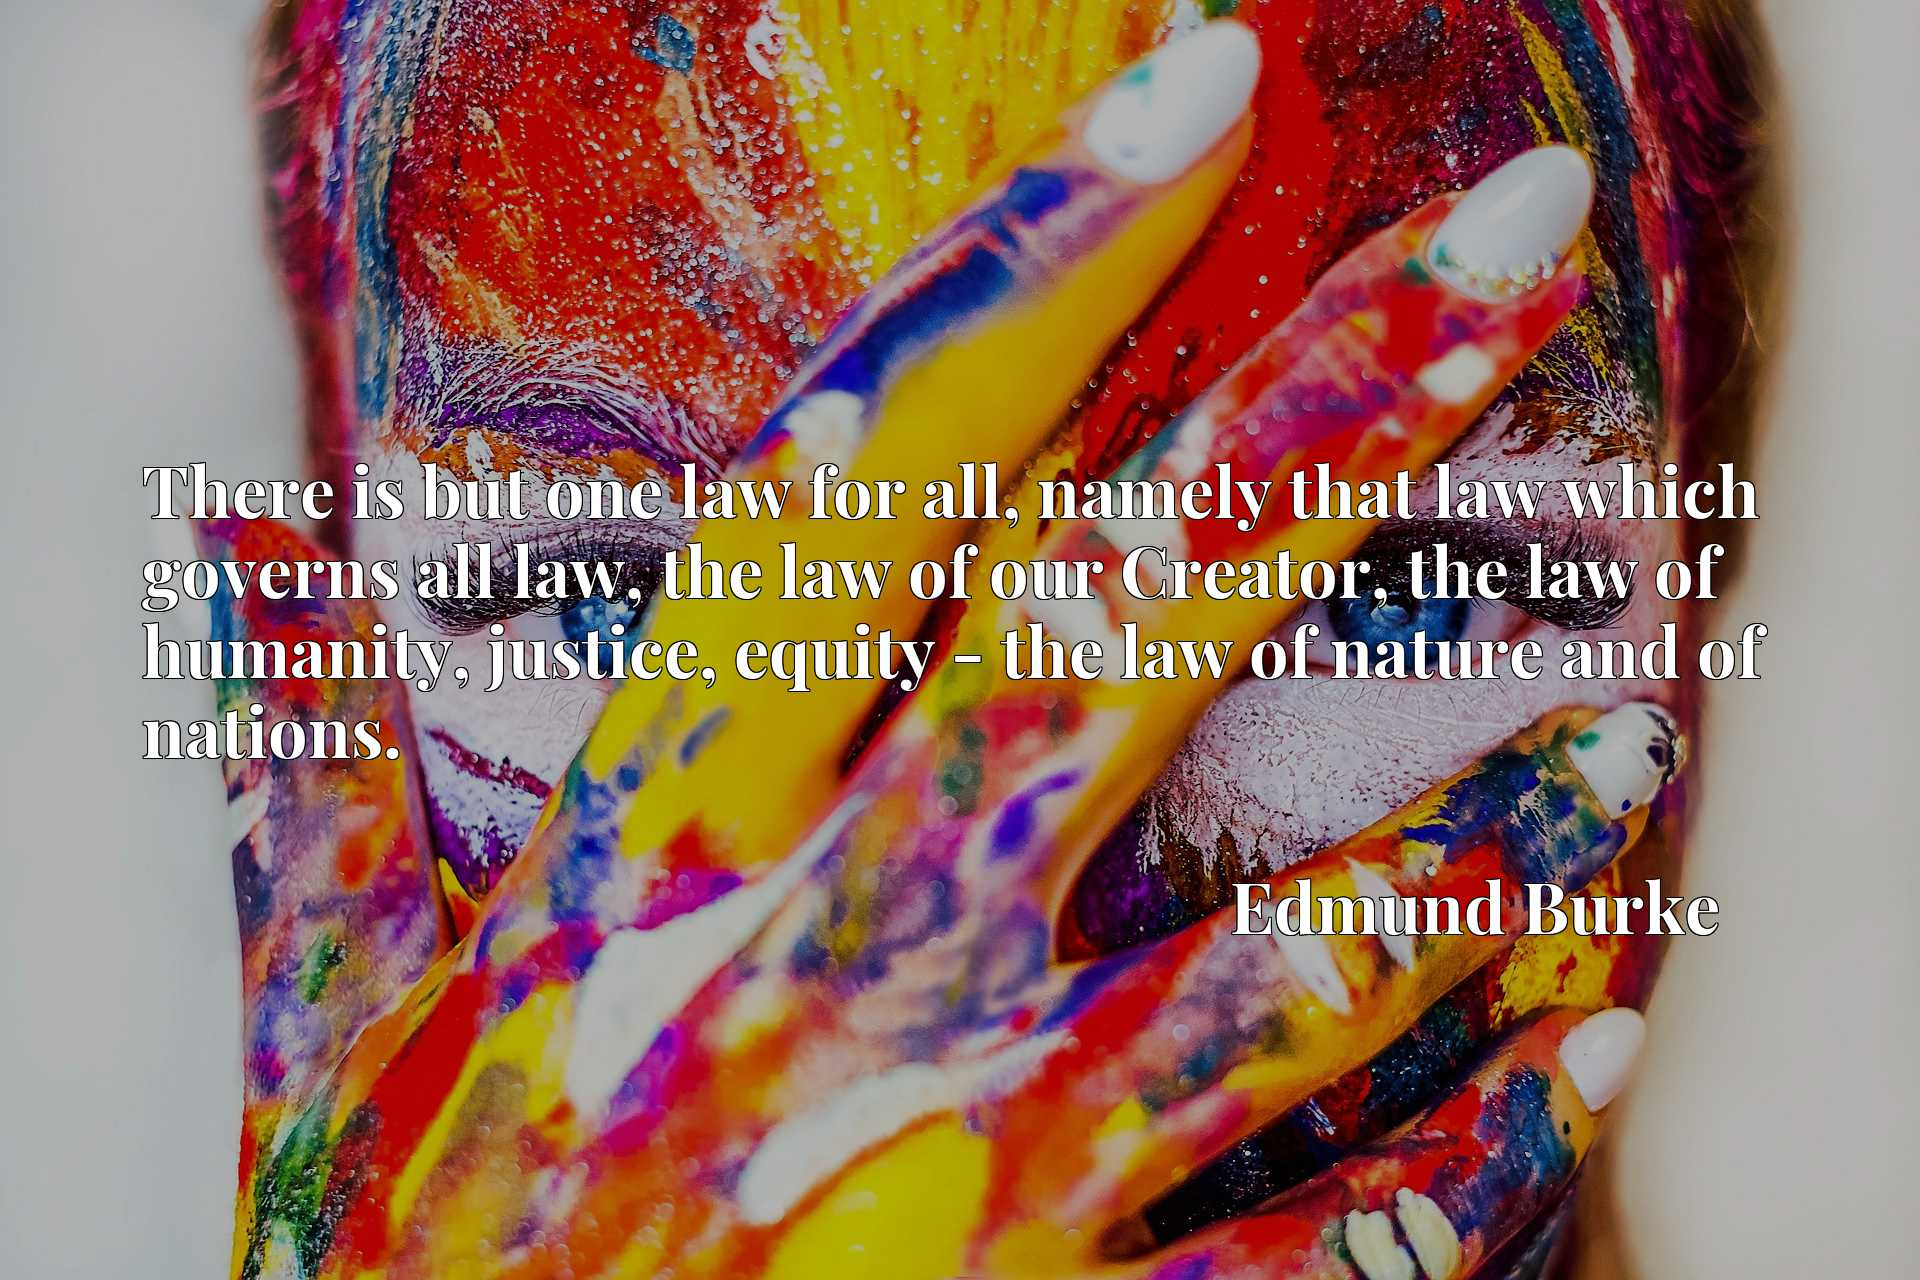 There is but one law for all, namely that law which governs all law, the law of our Creator, the law of humanity, justice, equity - the law of nature and of nations.